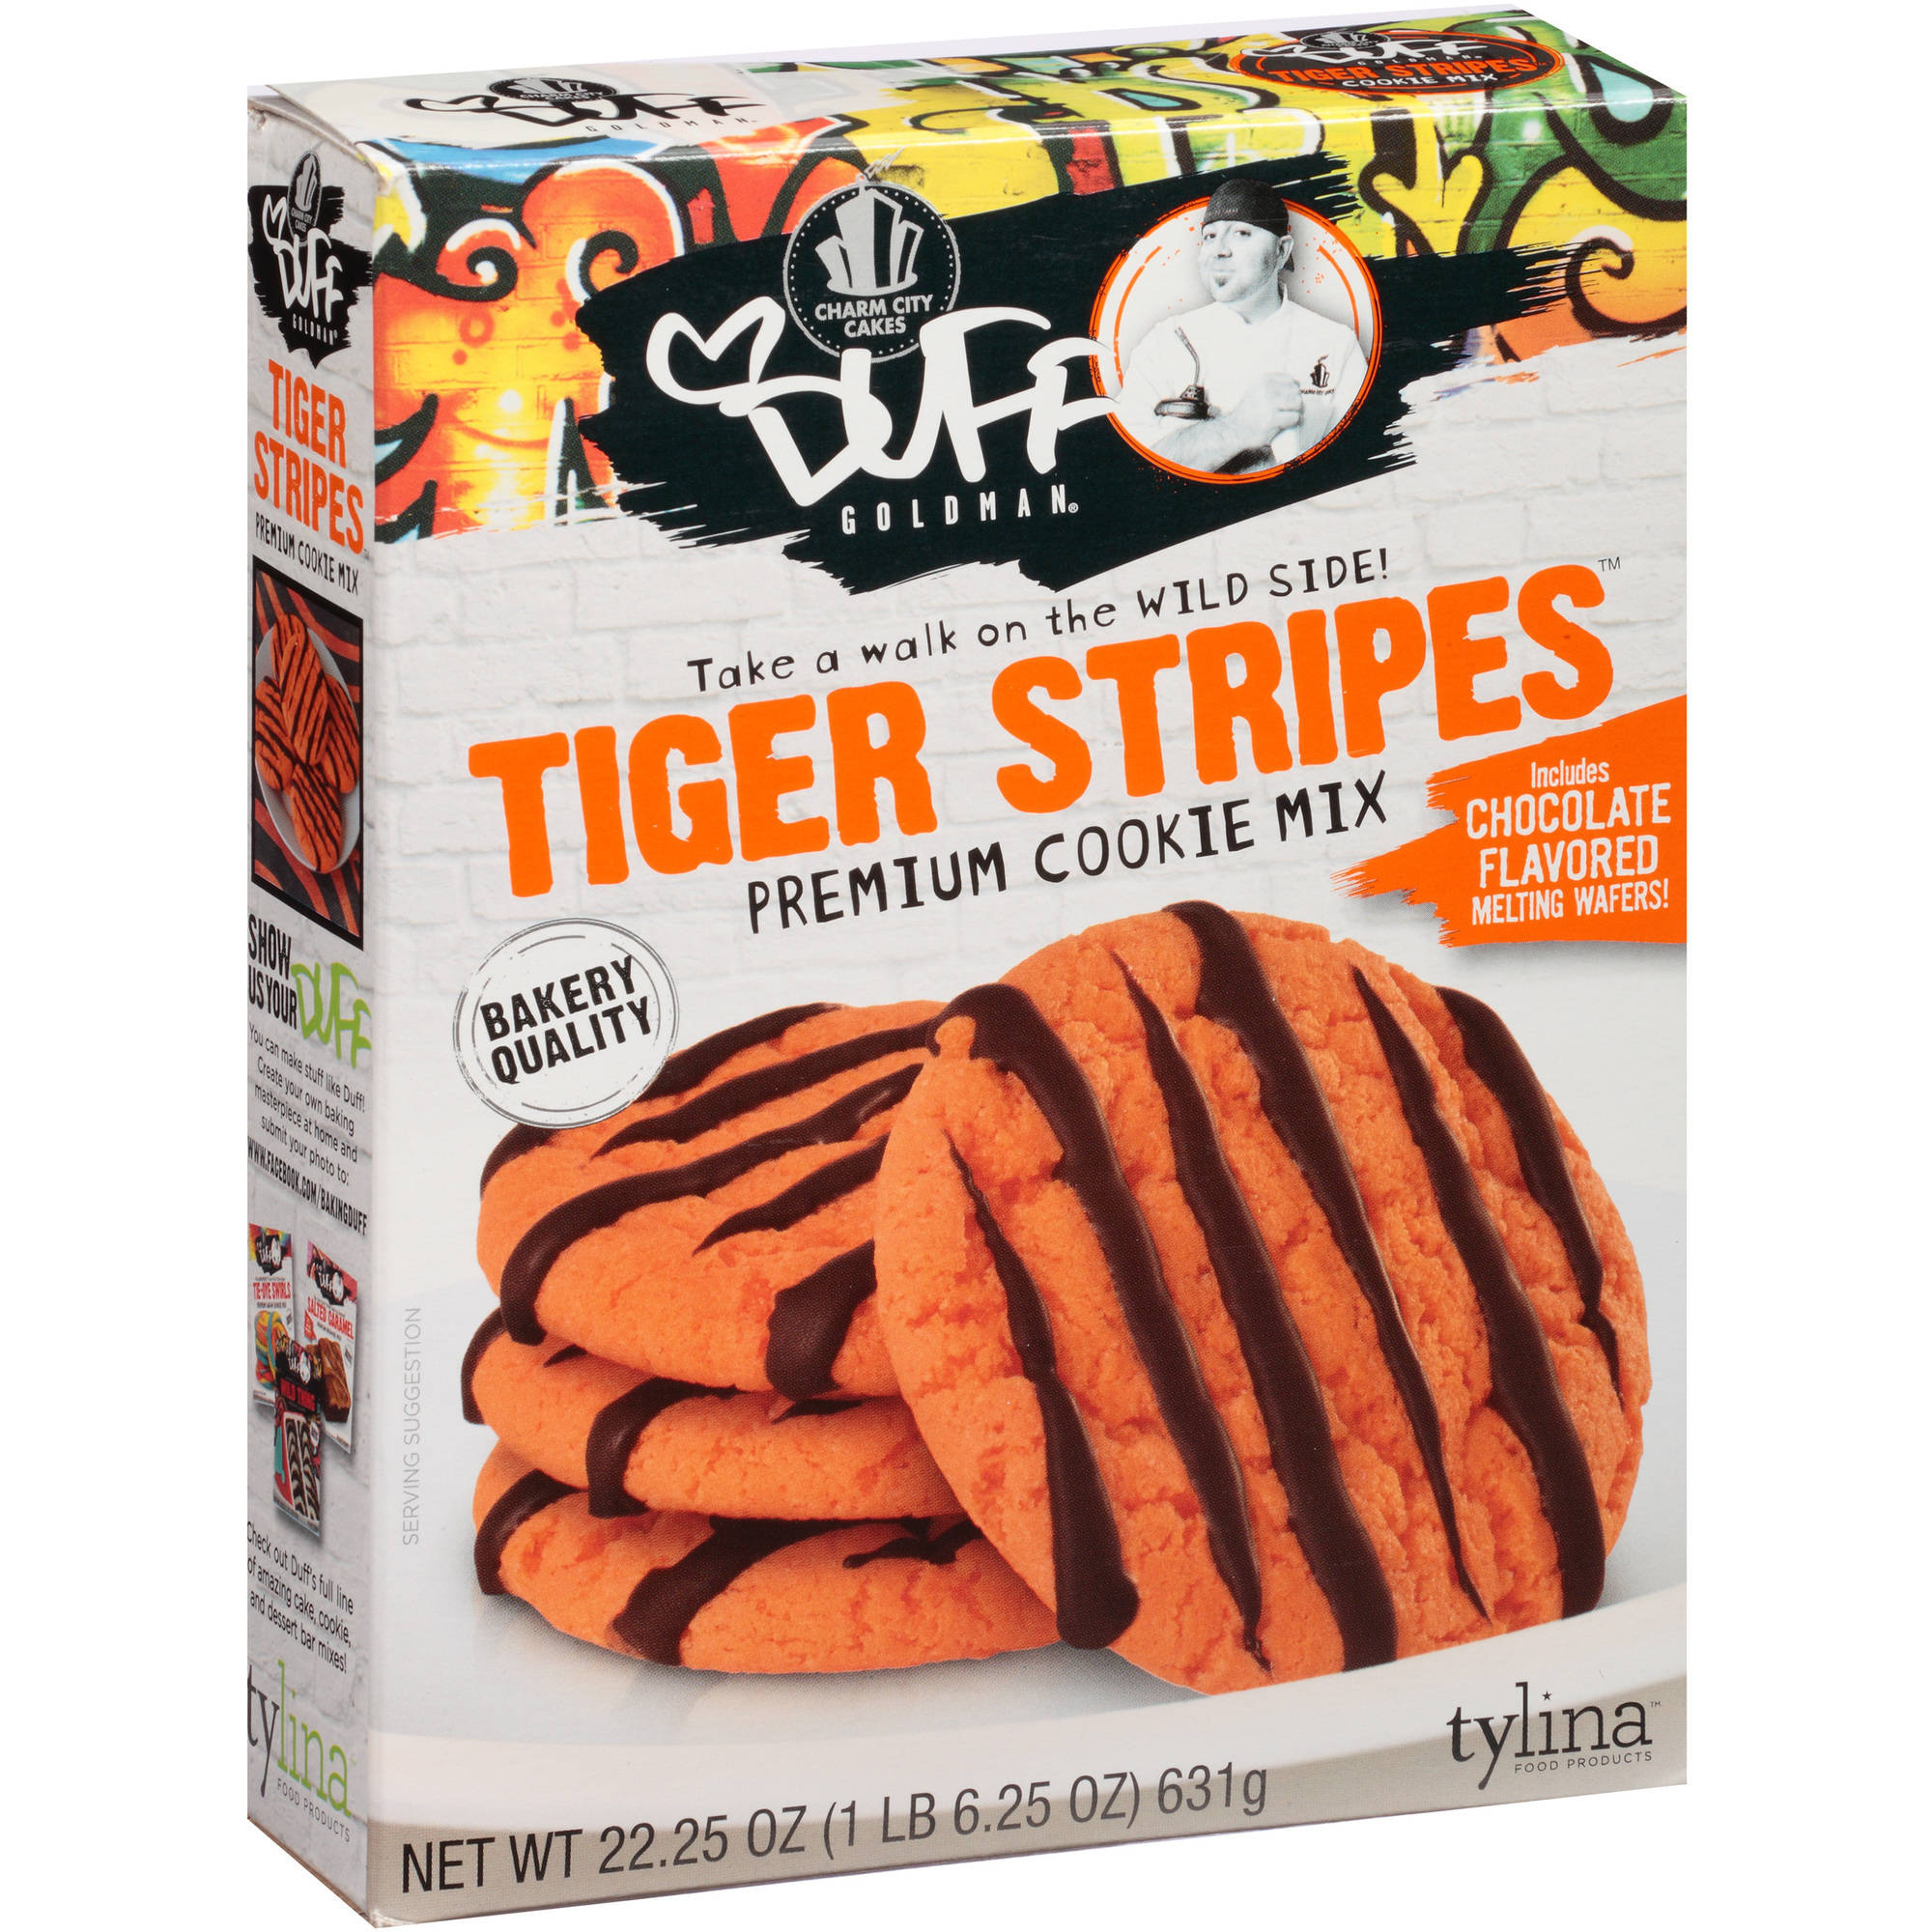 Duff Goldman Tiger Stripes Cookie Mix, 22.25 oz